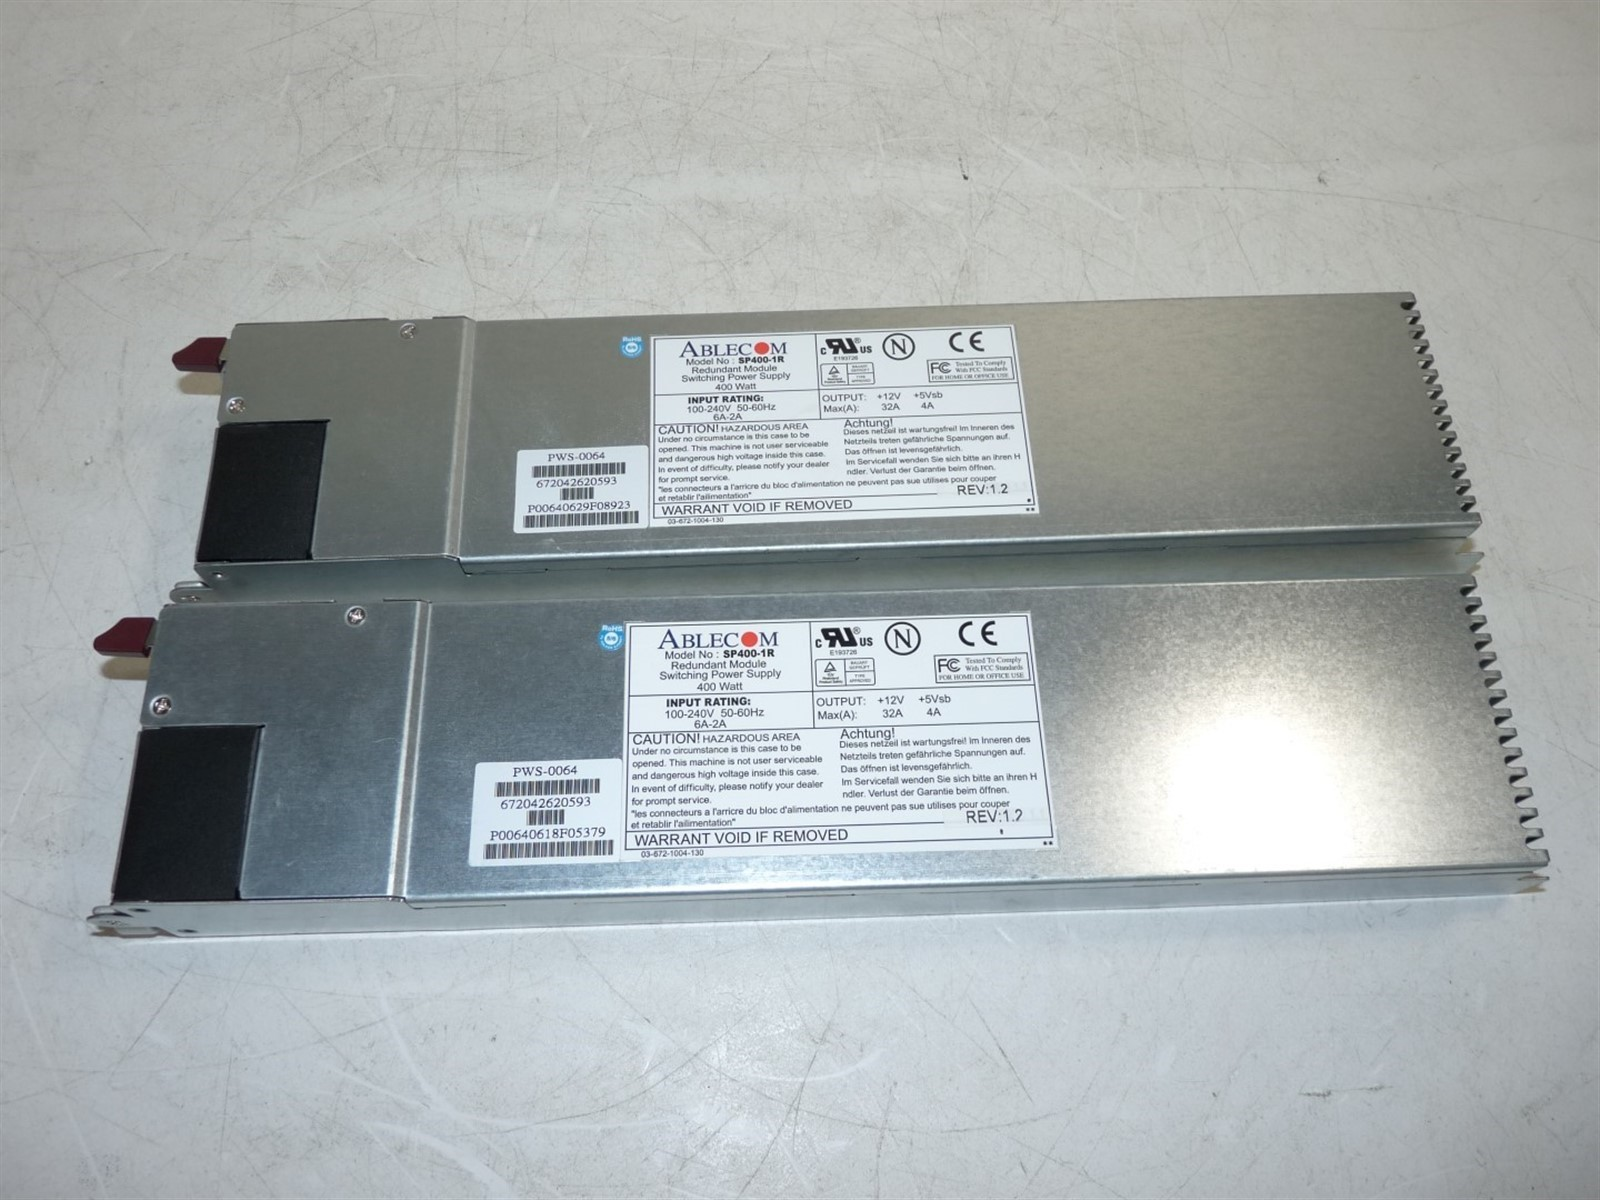 Lot Of 2 Ablecom Sp400 1r 400w Redundant Module Power Supply Watt Switching Untested As Is For Parts Or Not Working